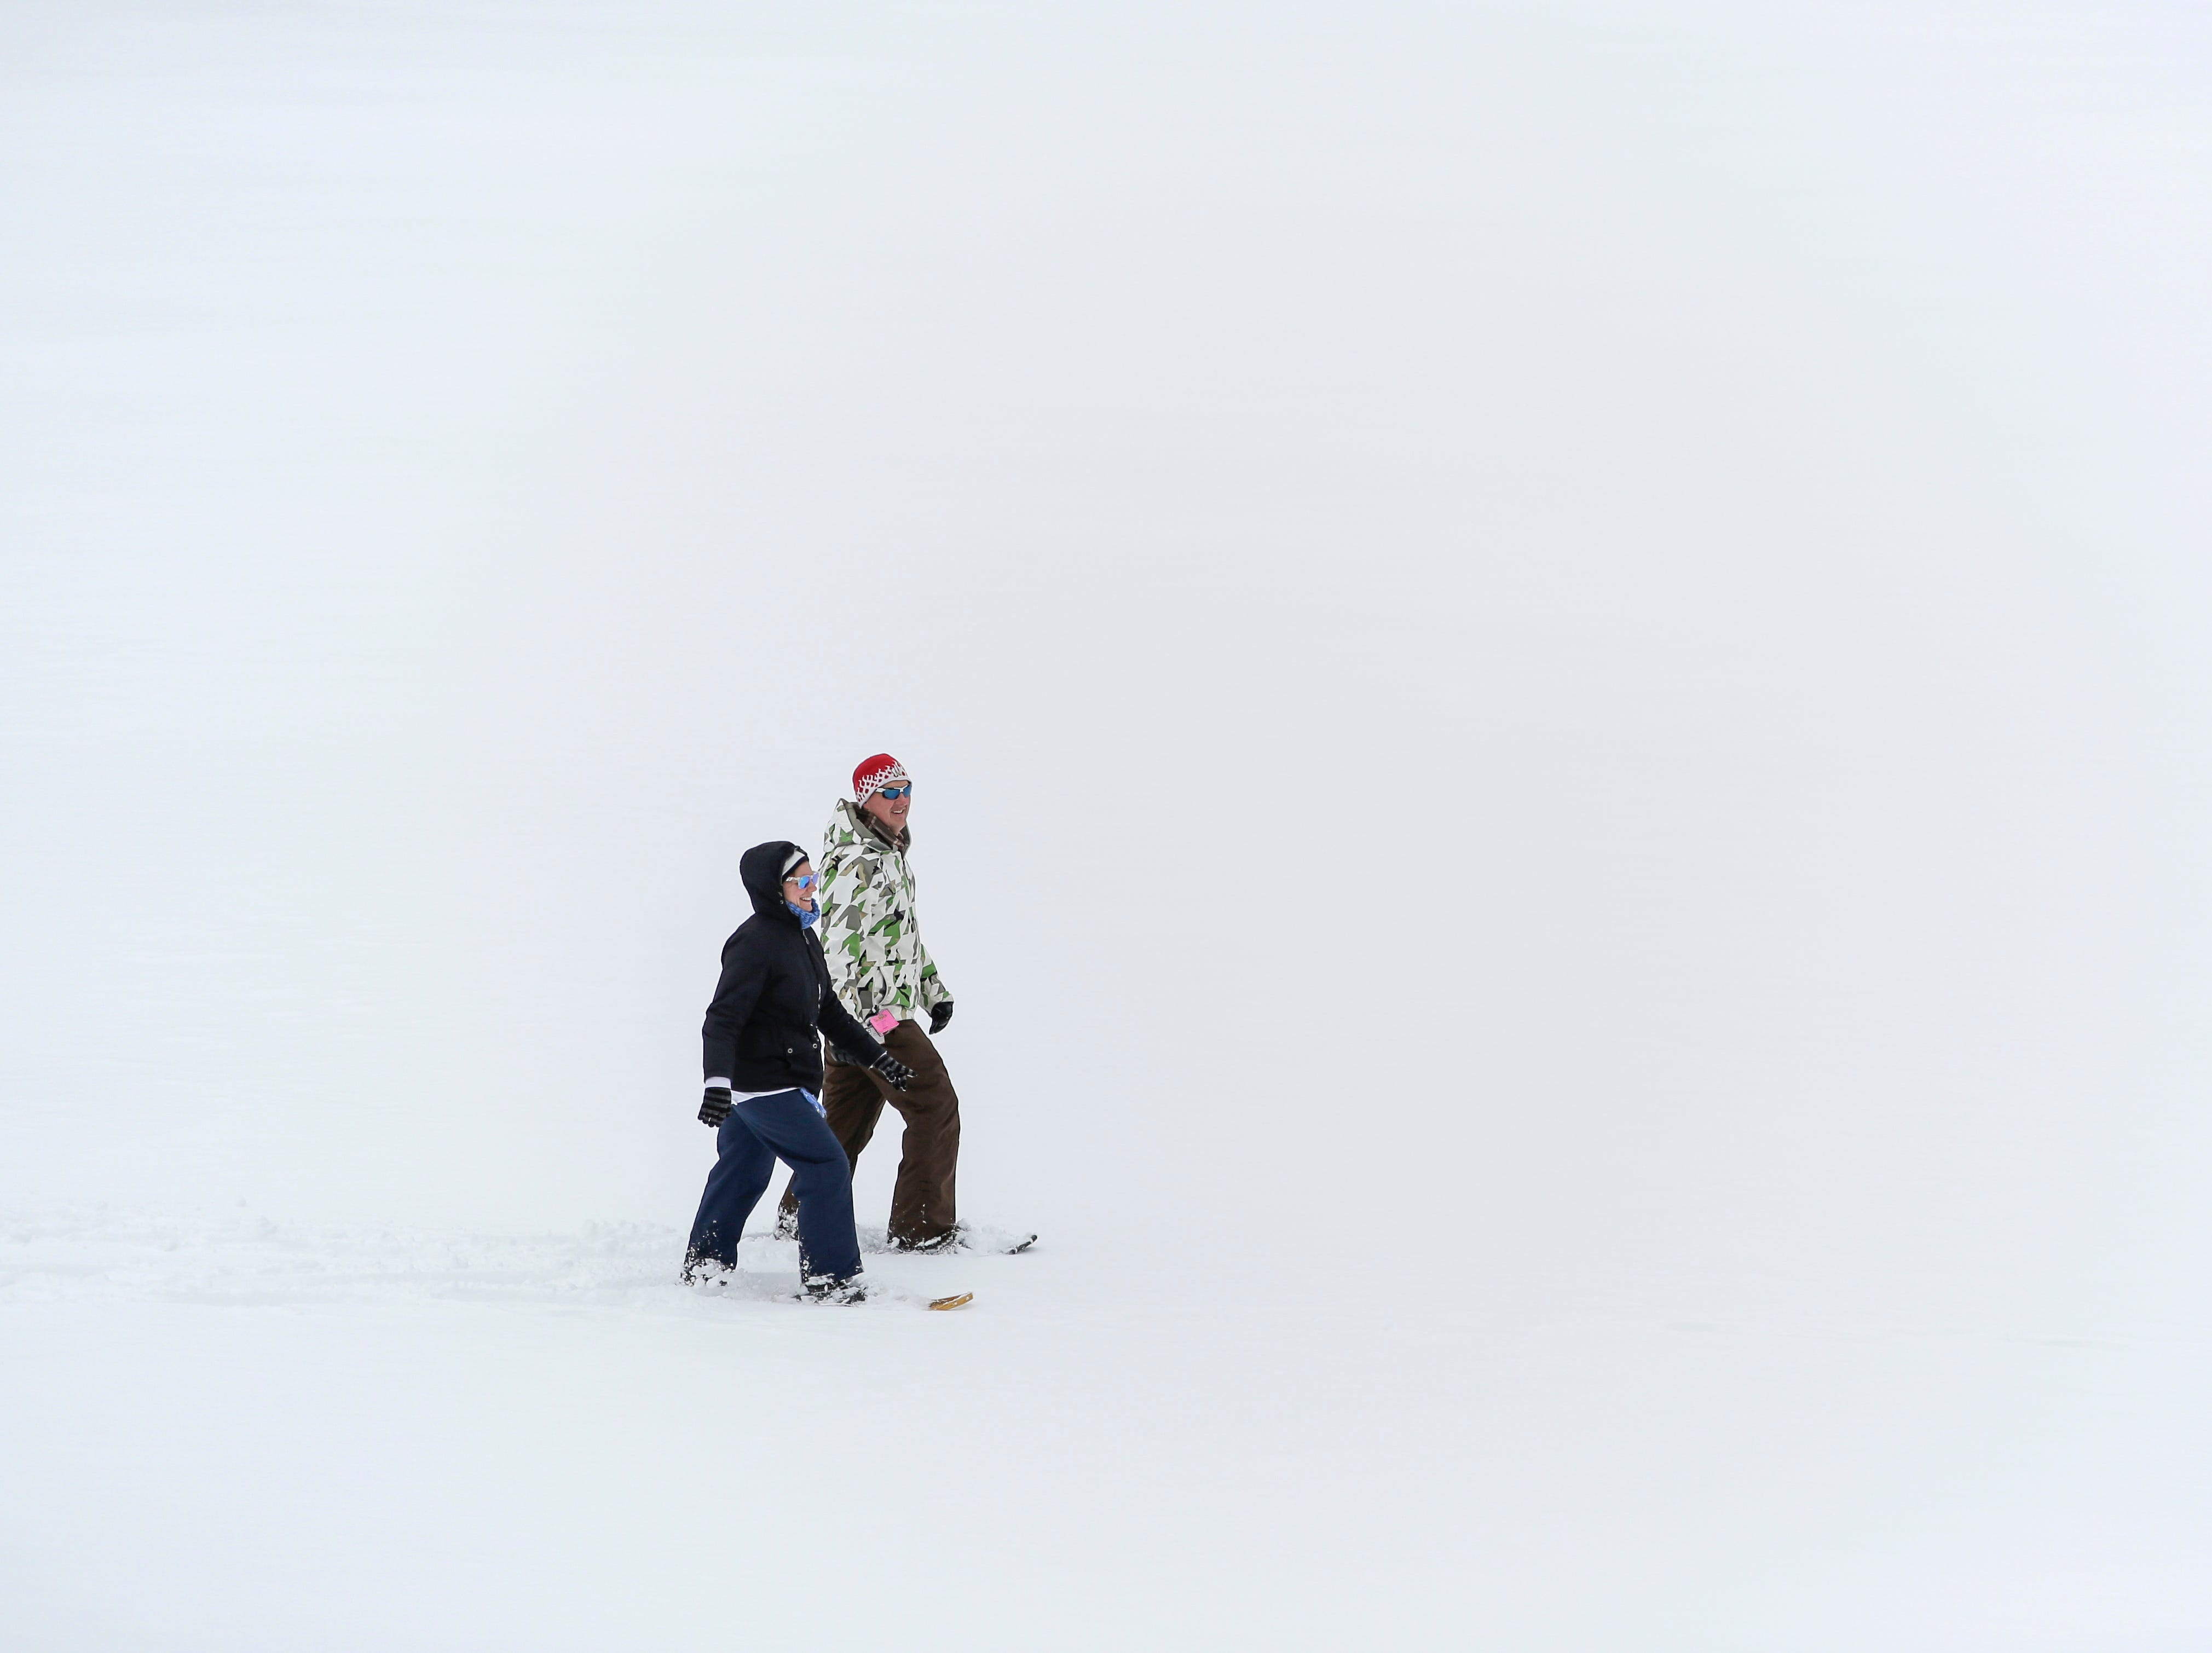 A woman and a man snow shoe through Silver Creek Park after winter storm Evelyn dropped more than a foot of snow on the area Monday, Apr. 16, 2018, in Manitowoc, Wis. Josh Clark/USA TODAY NETWORK-Wisconsin